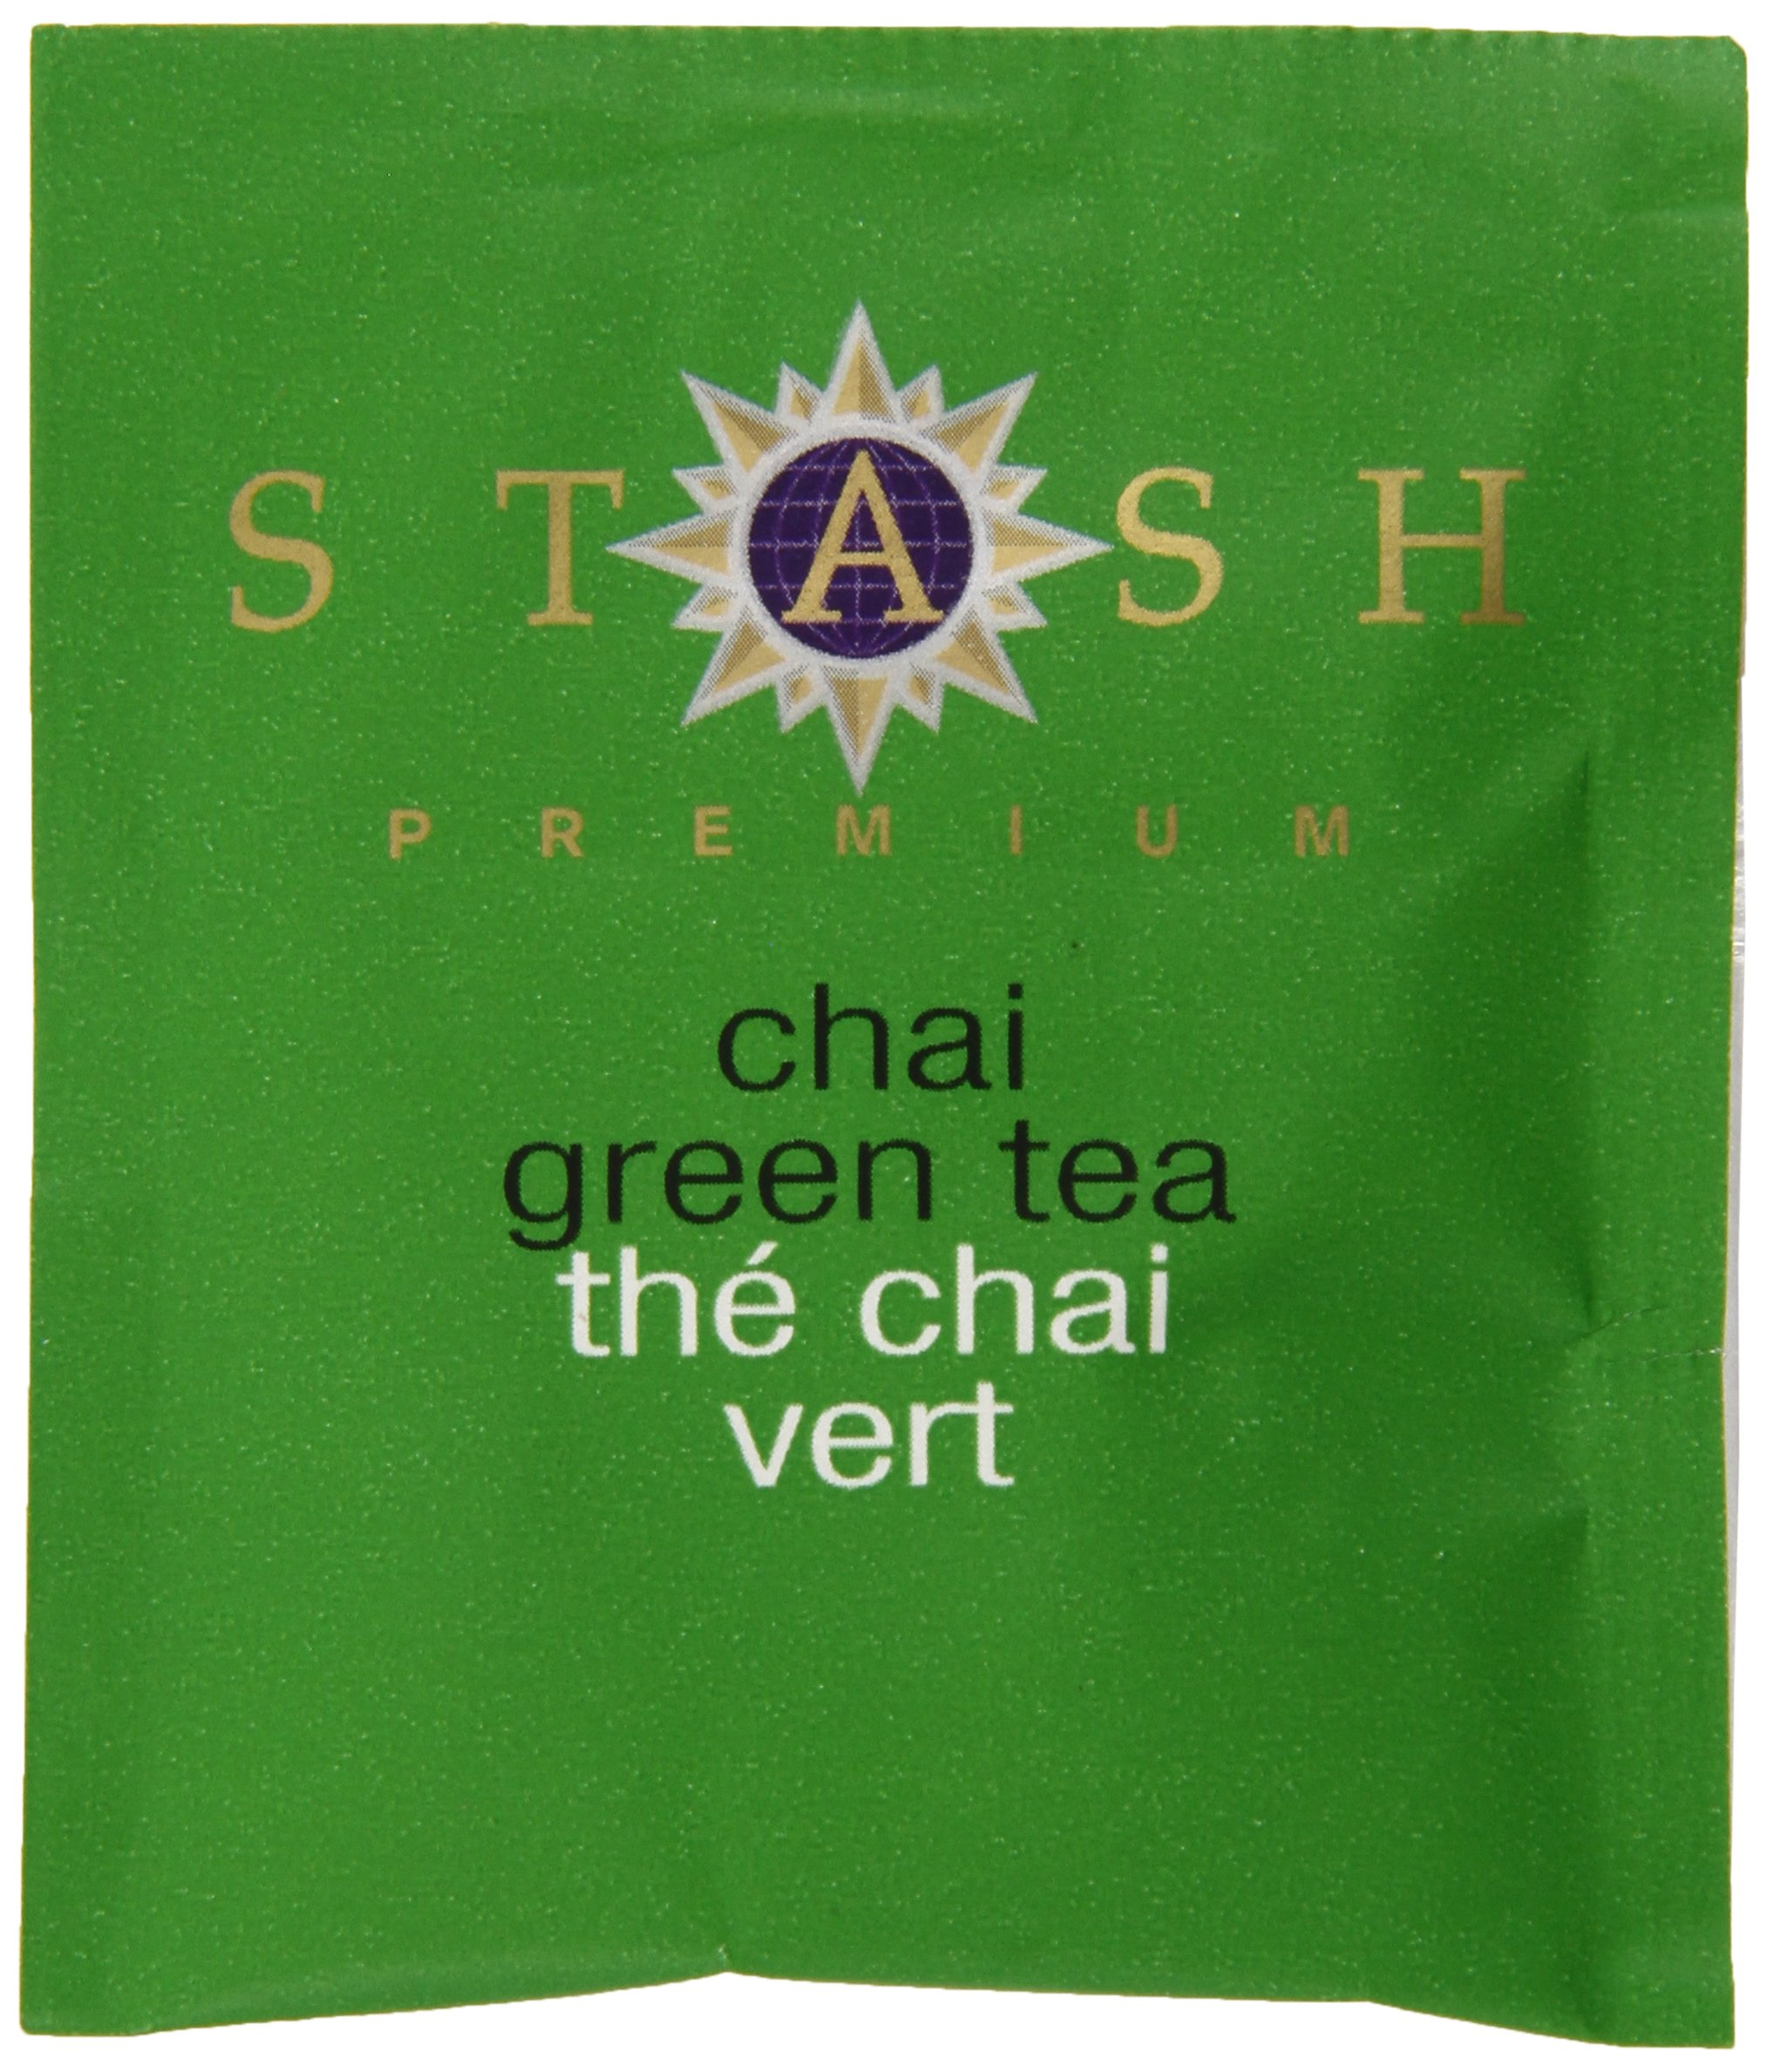 Stash Tea Green Chai Tea 10 Count Tea Bags in Foil (Pack of 12) (packaging may vary) Individual Spiced Green Tea Bags for Use in Teapots Mugs or Teacups, Brew Hot Tea or Iced Tea